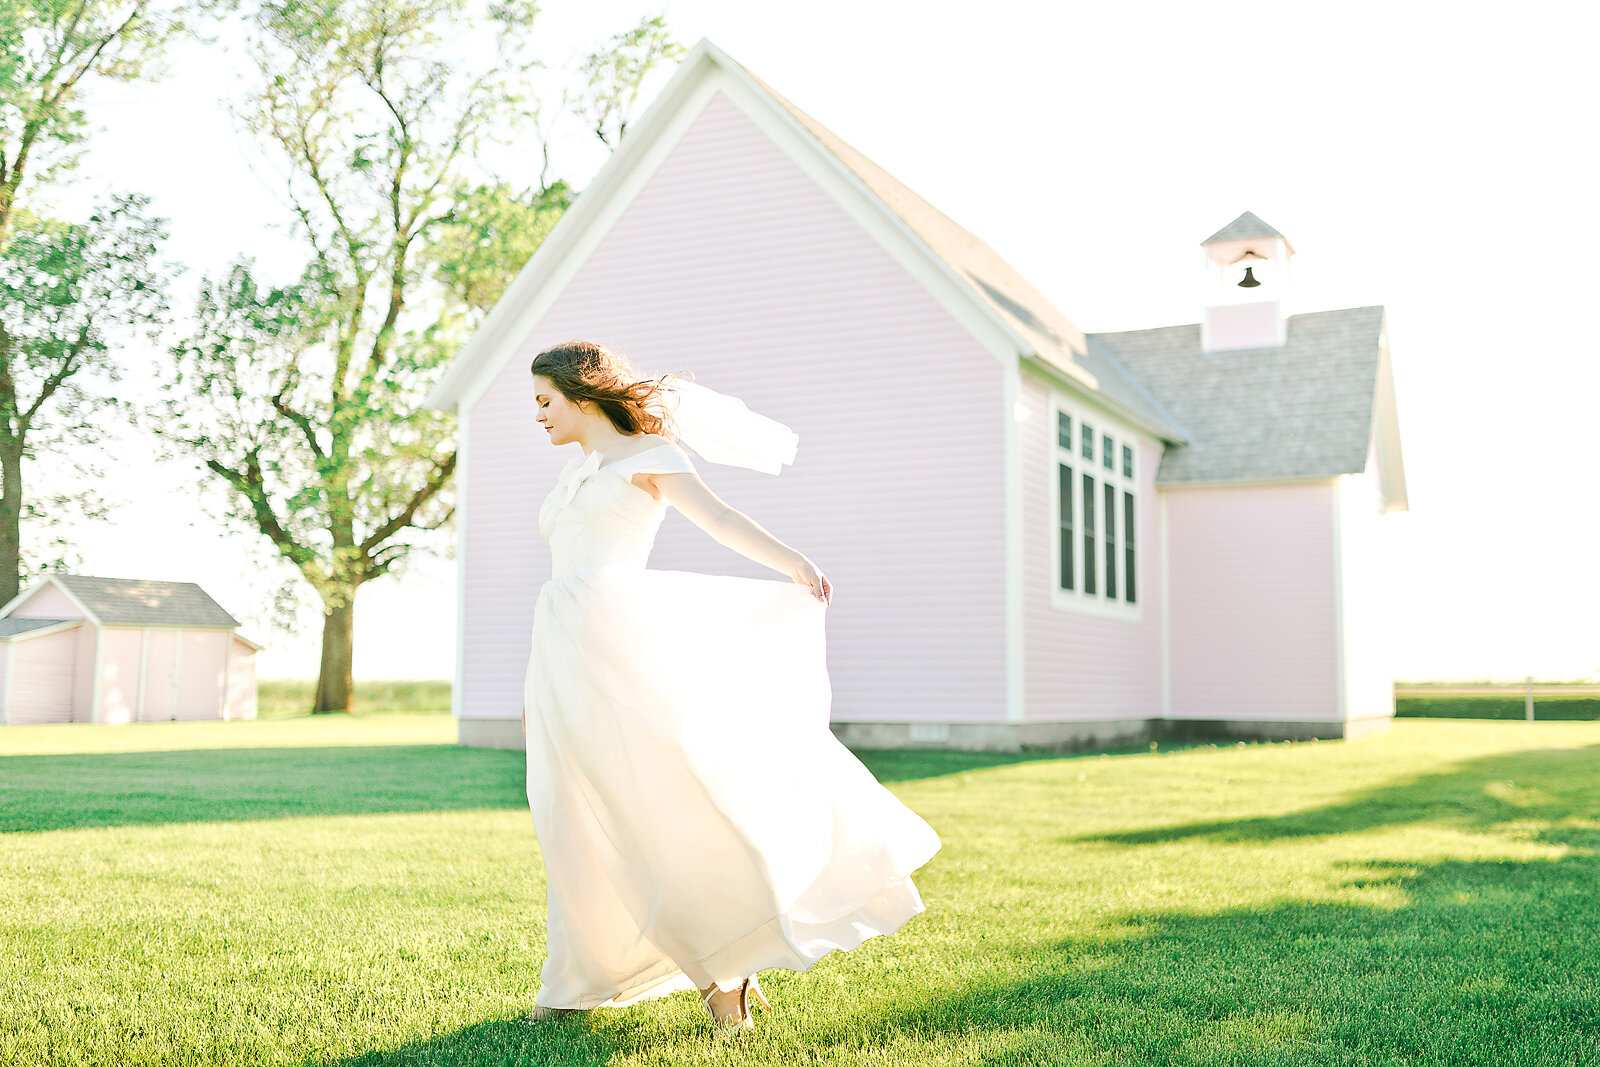 family_history_wedding_dress_shoot_016.jpg